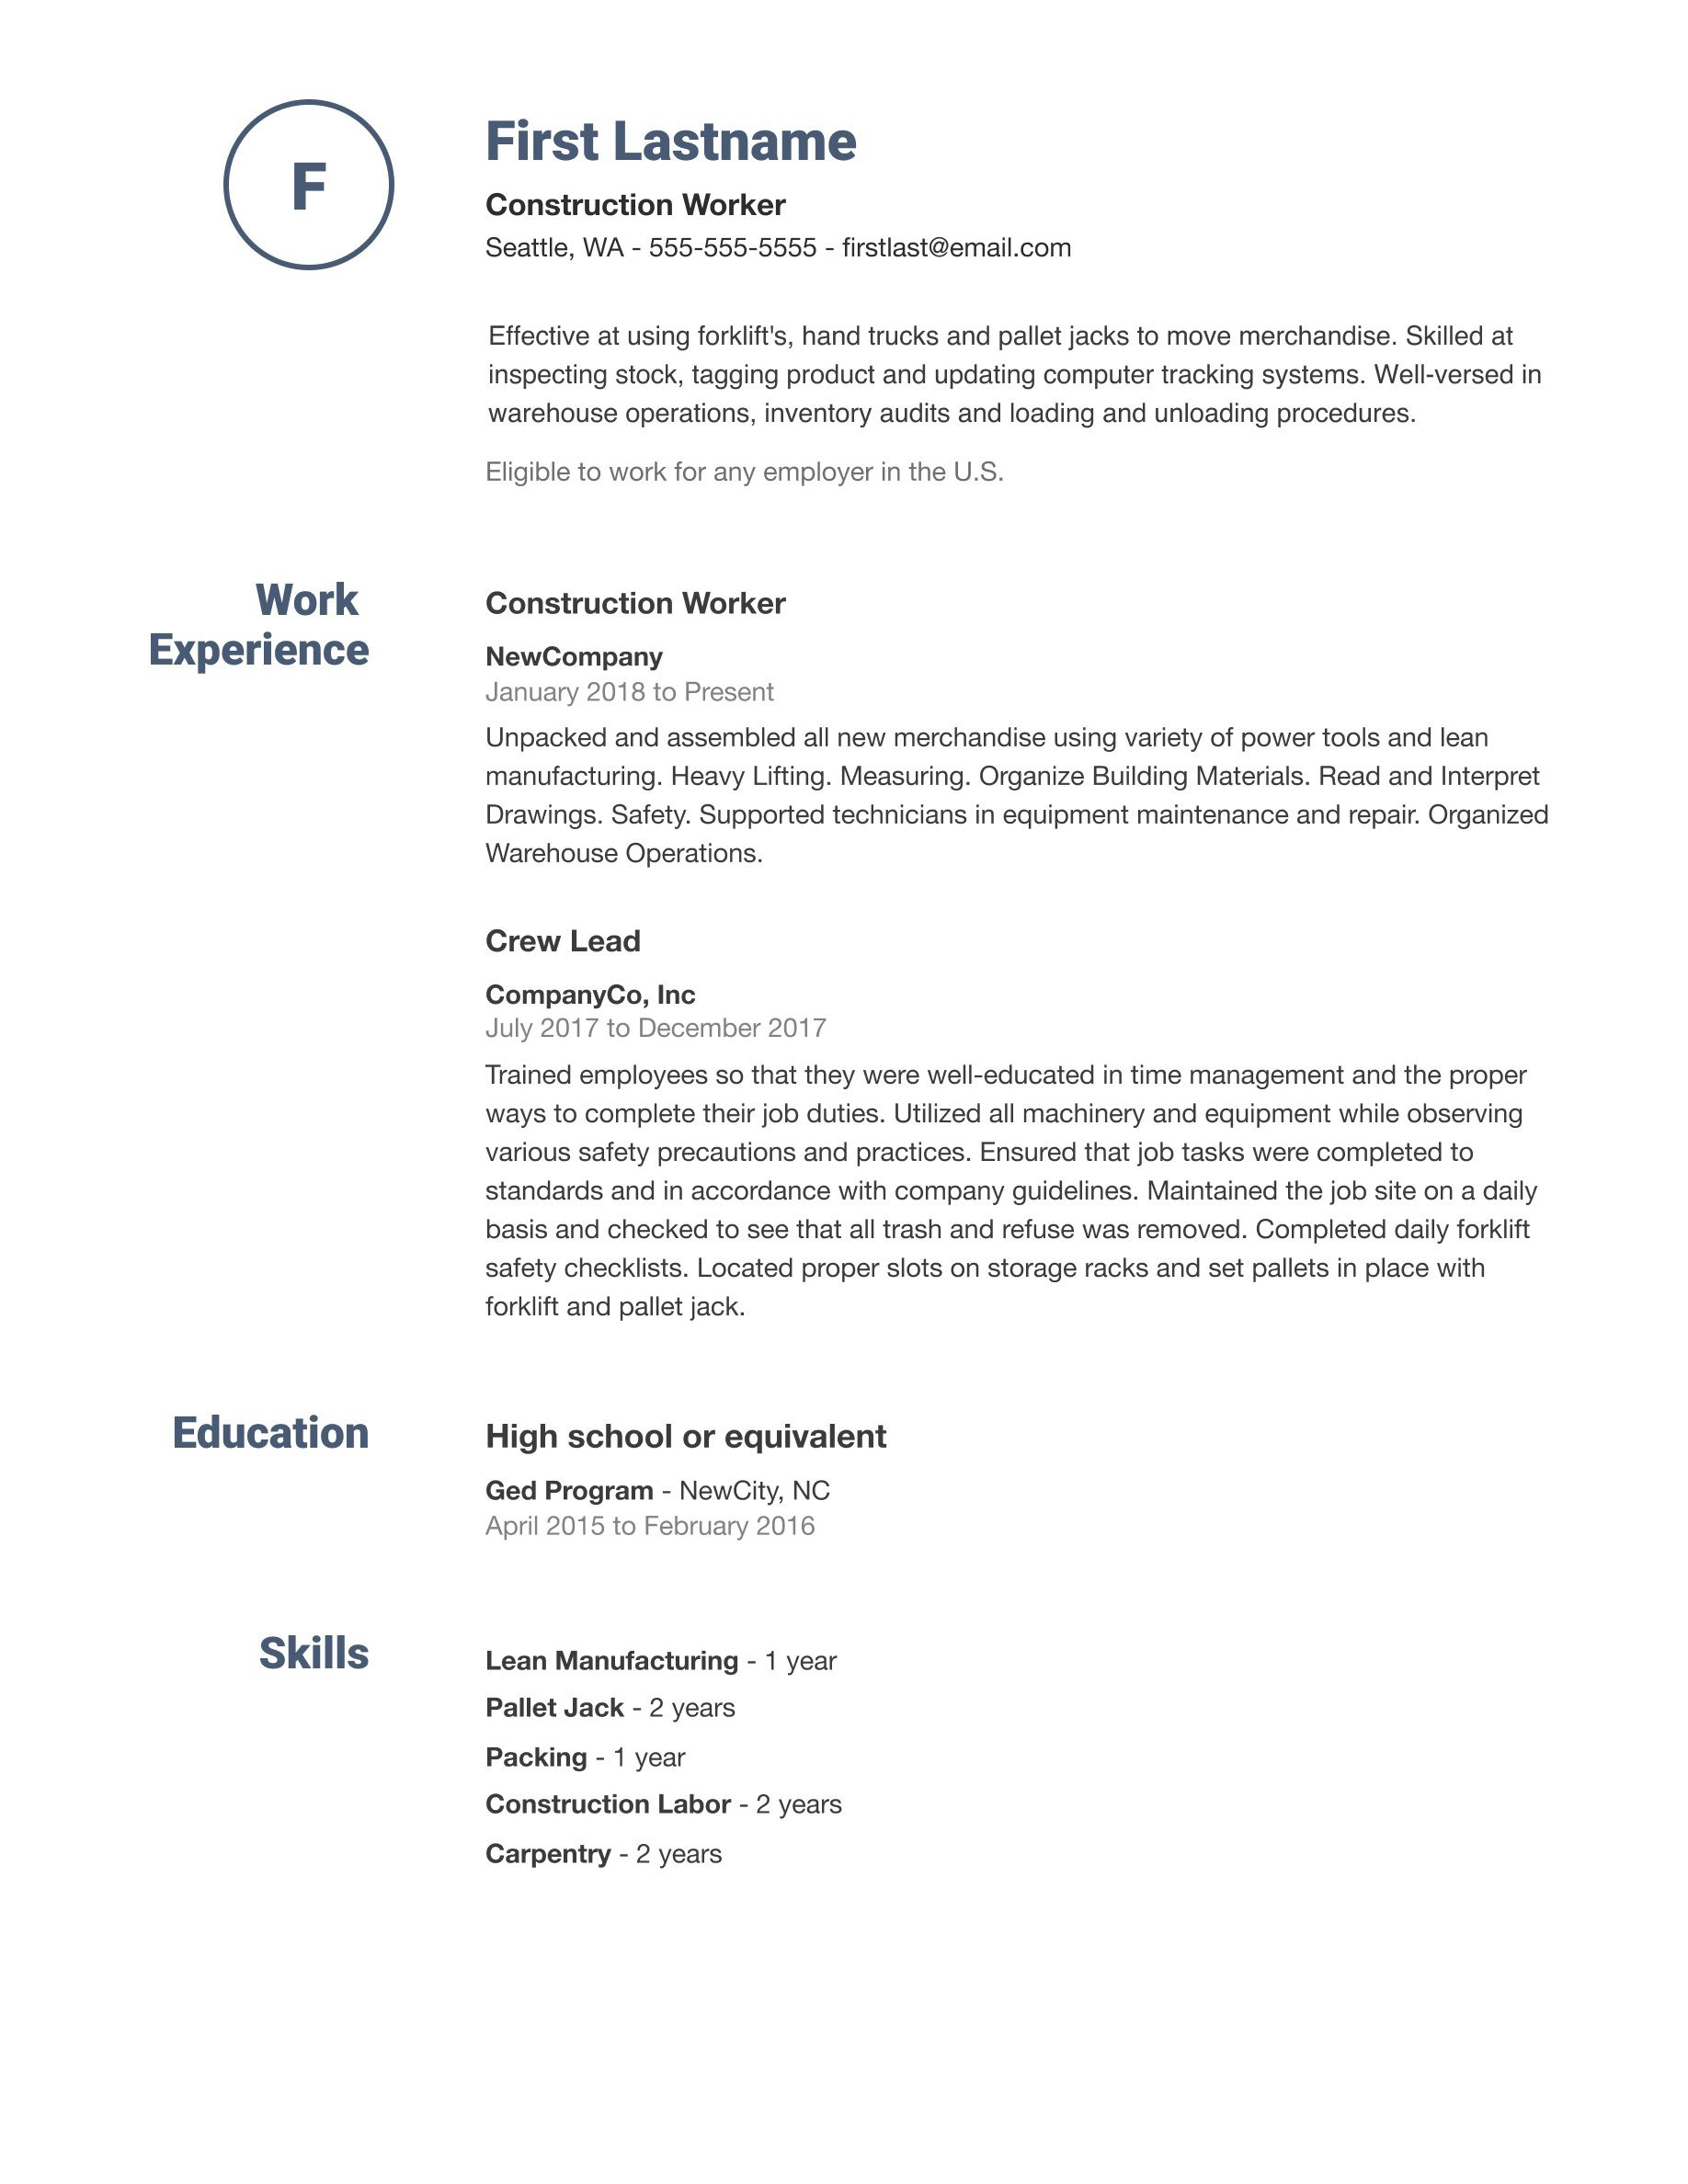 005 Striking Professional Resume Template Example High Resolution  Examples Layout Cv Writing FormatFull